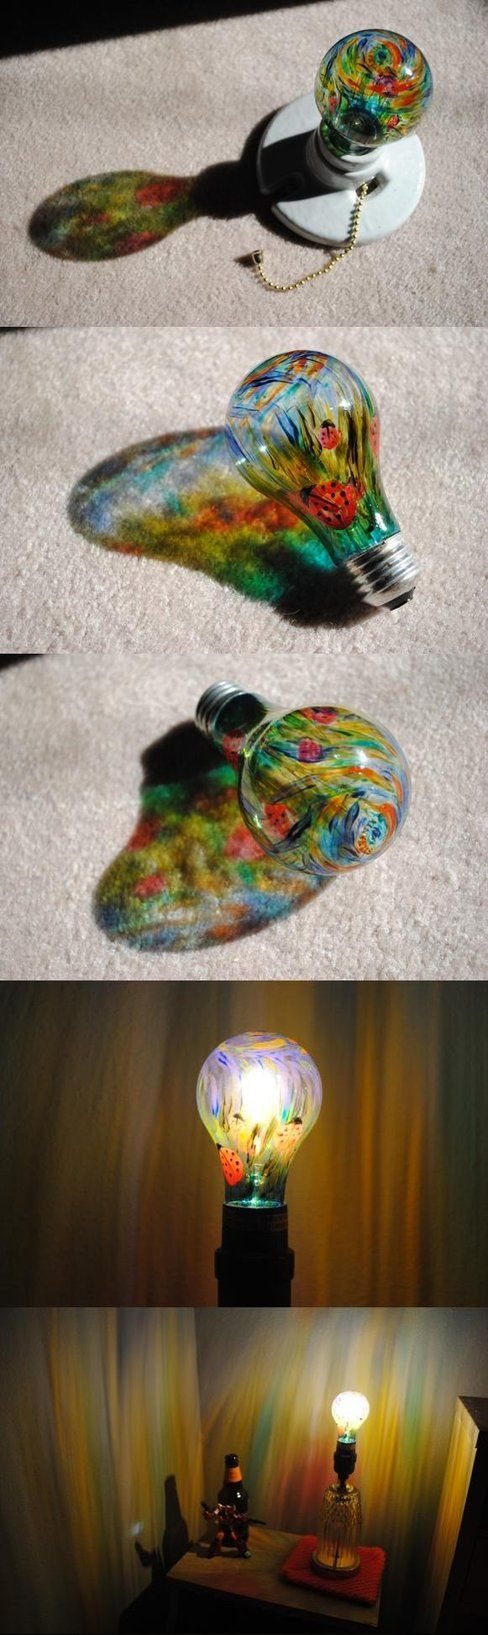 37.PAINT A LIGHT BULB AND SPREAD THE COLORS